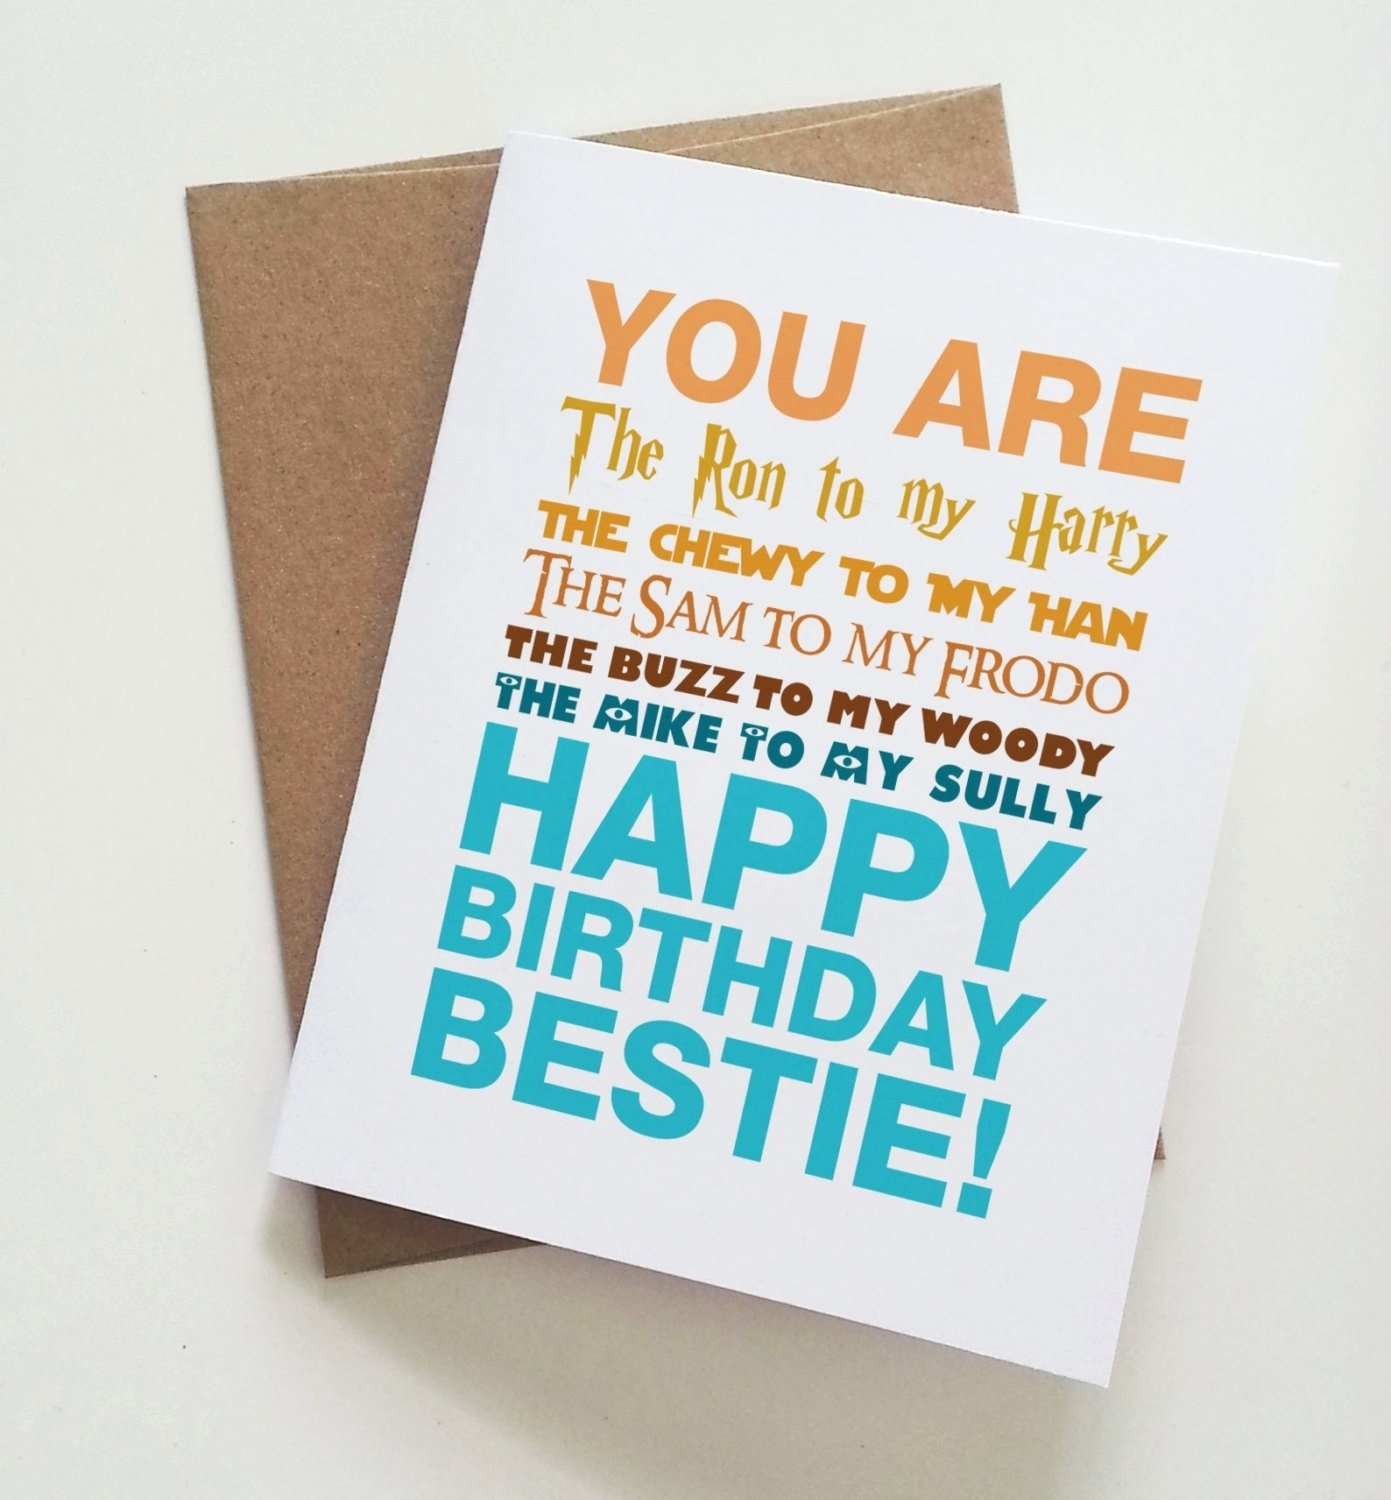 Ideas For Making Birthday Cards For Friends Birthday Card Making Ideas For Best Friend Homemade Bday Cards For